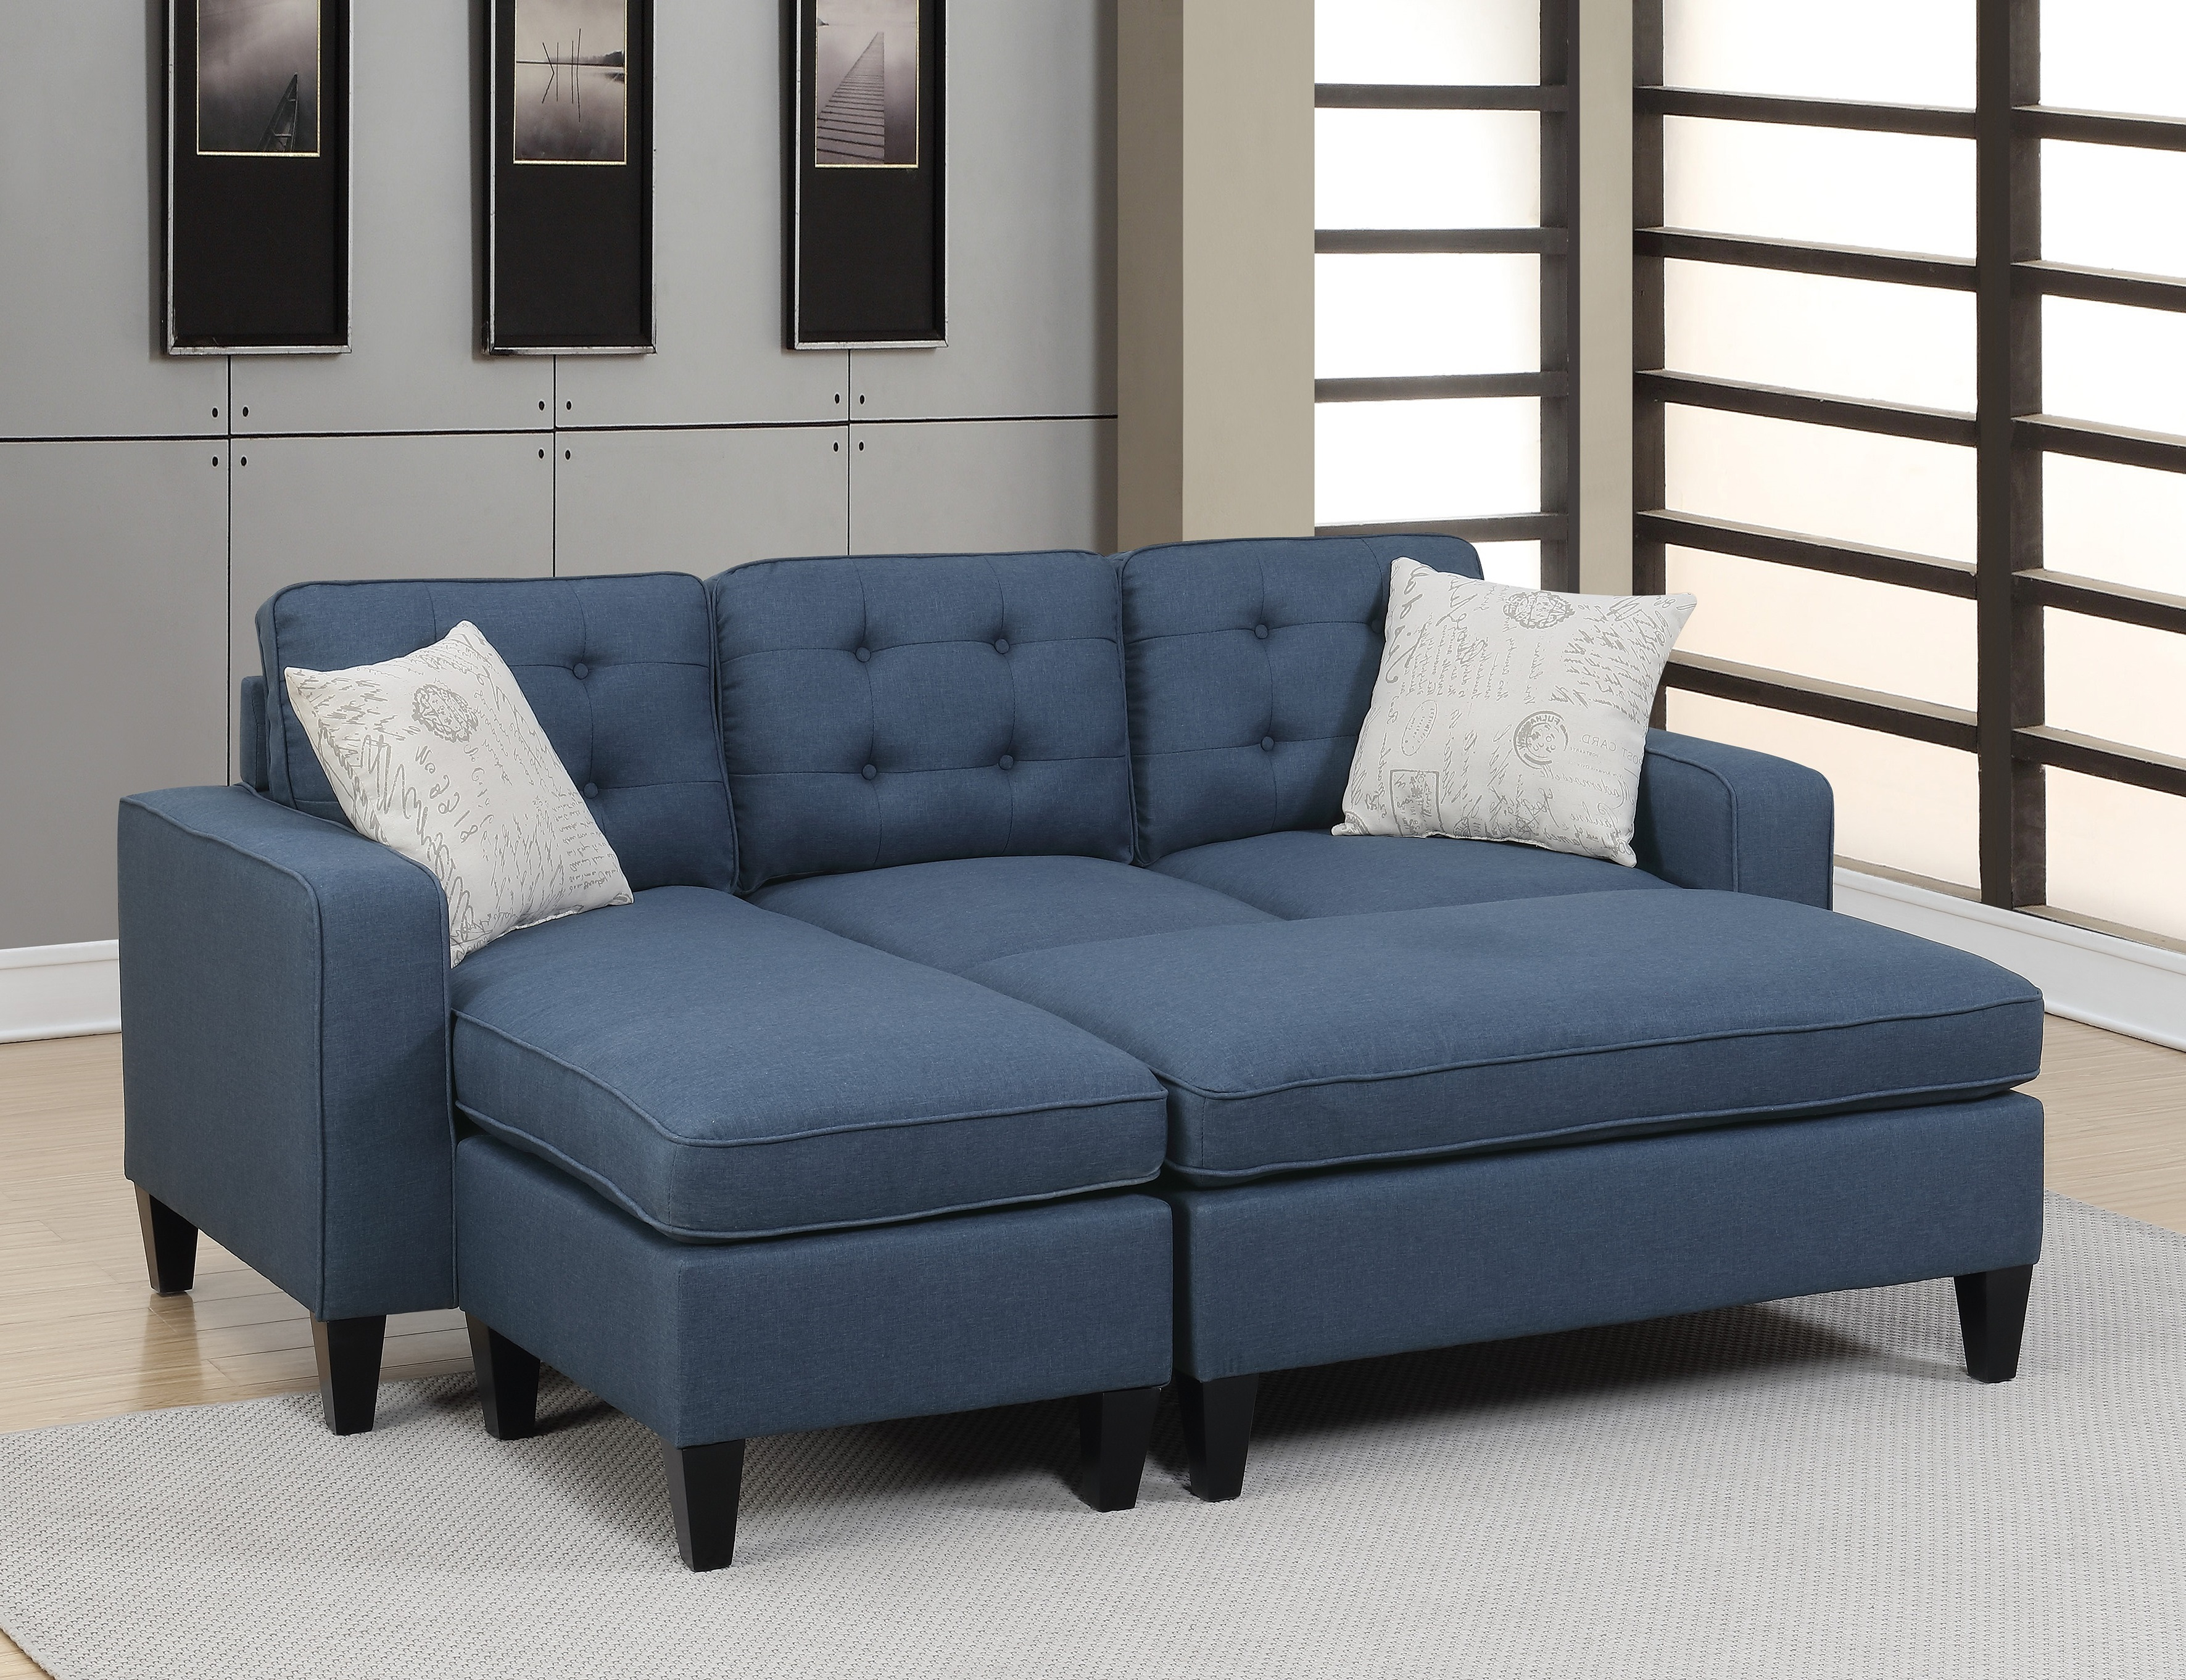 Sectionals Reversible Sectional Sofa w XL-Ottoman Modern Navy Polyfiber  Living Room Tufted Couch